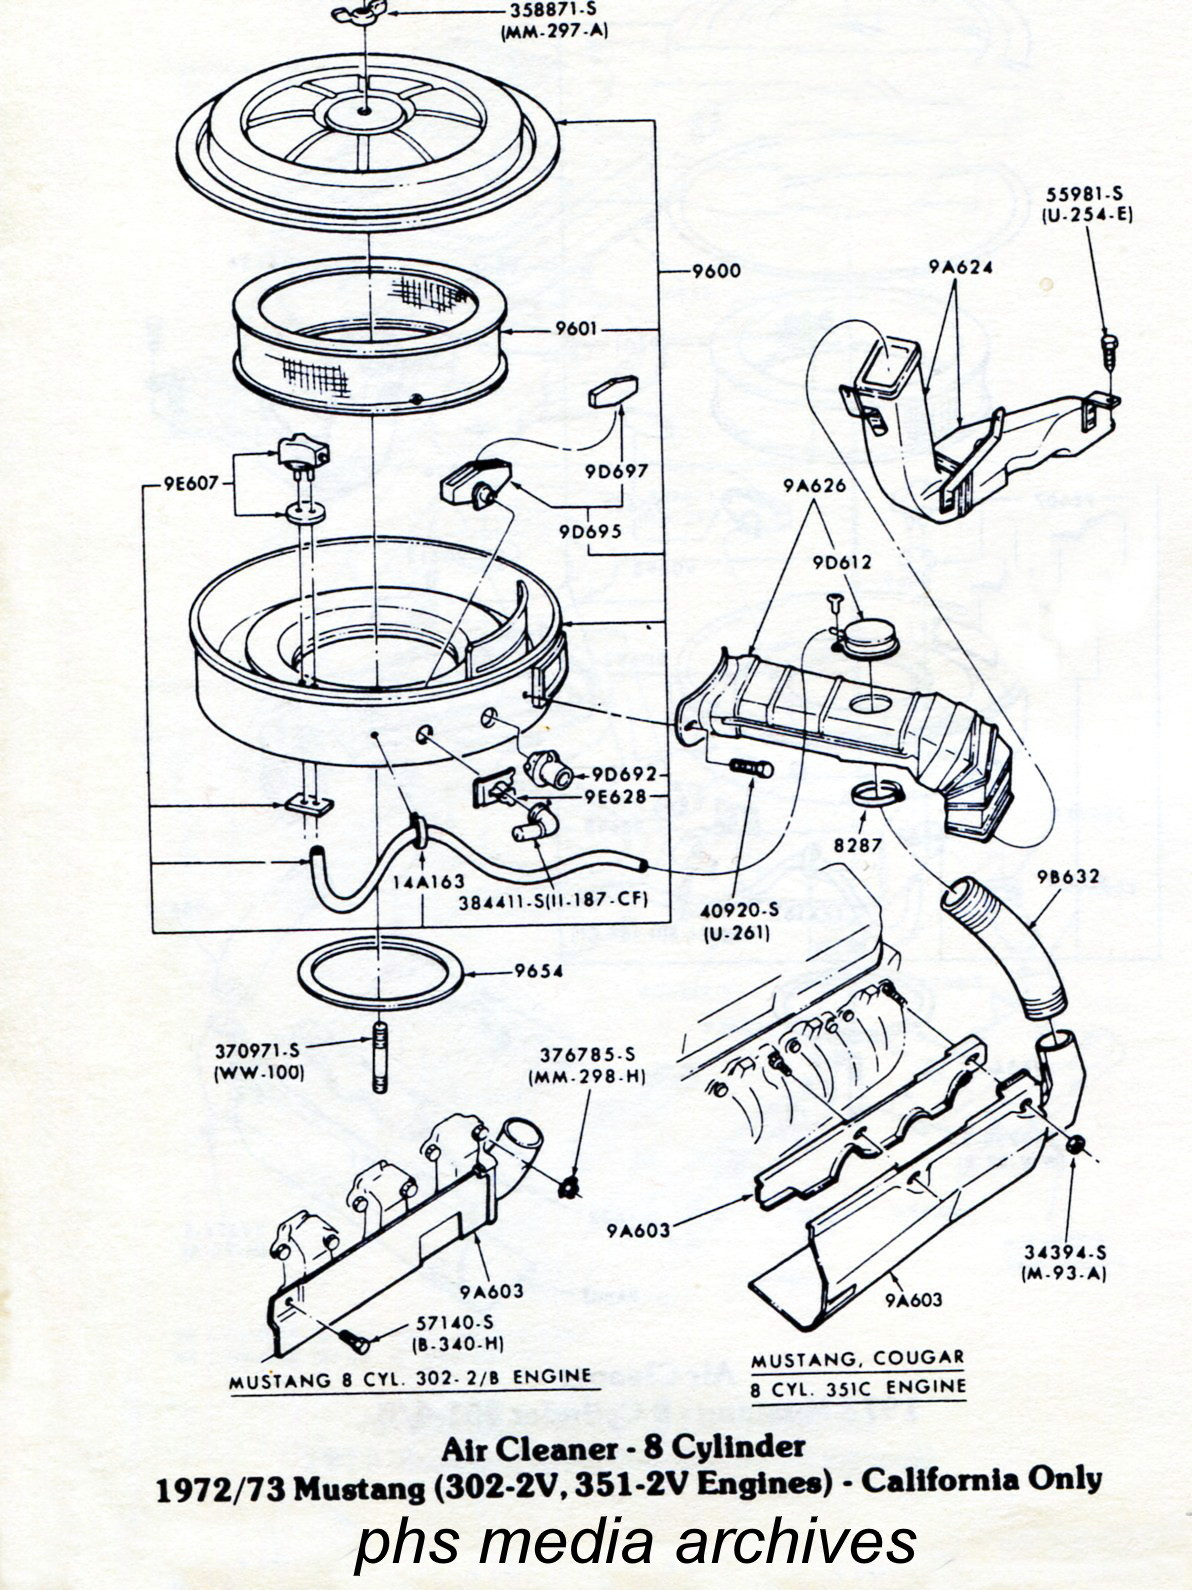 351 v8 engine diagram | wiring library 1984 ford 302 engine diagram